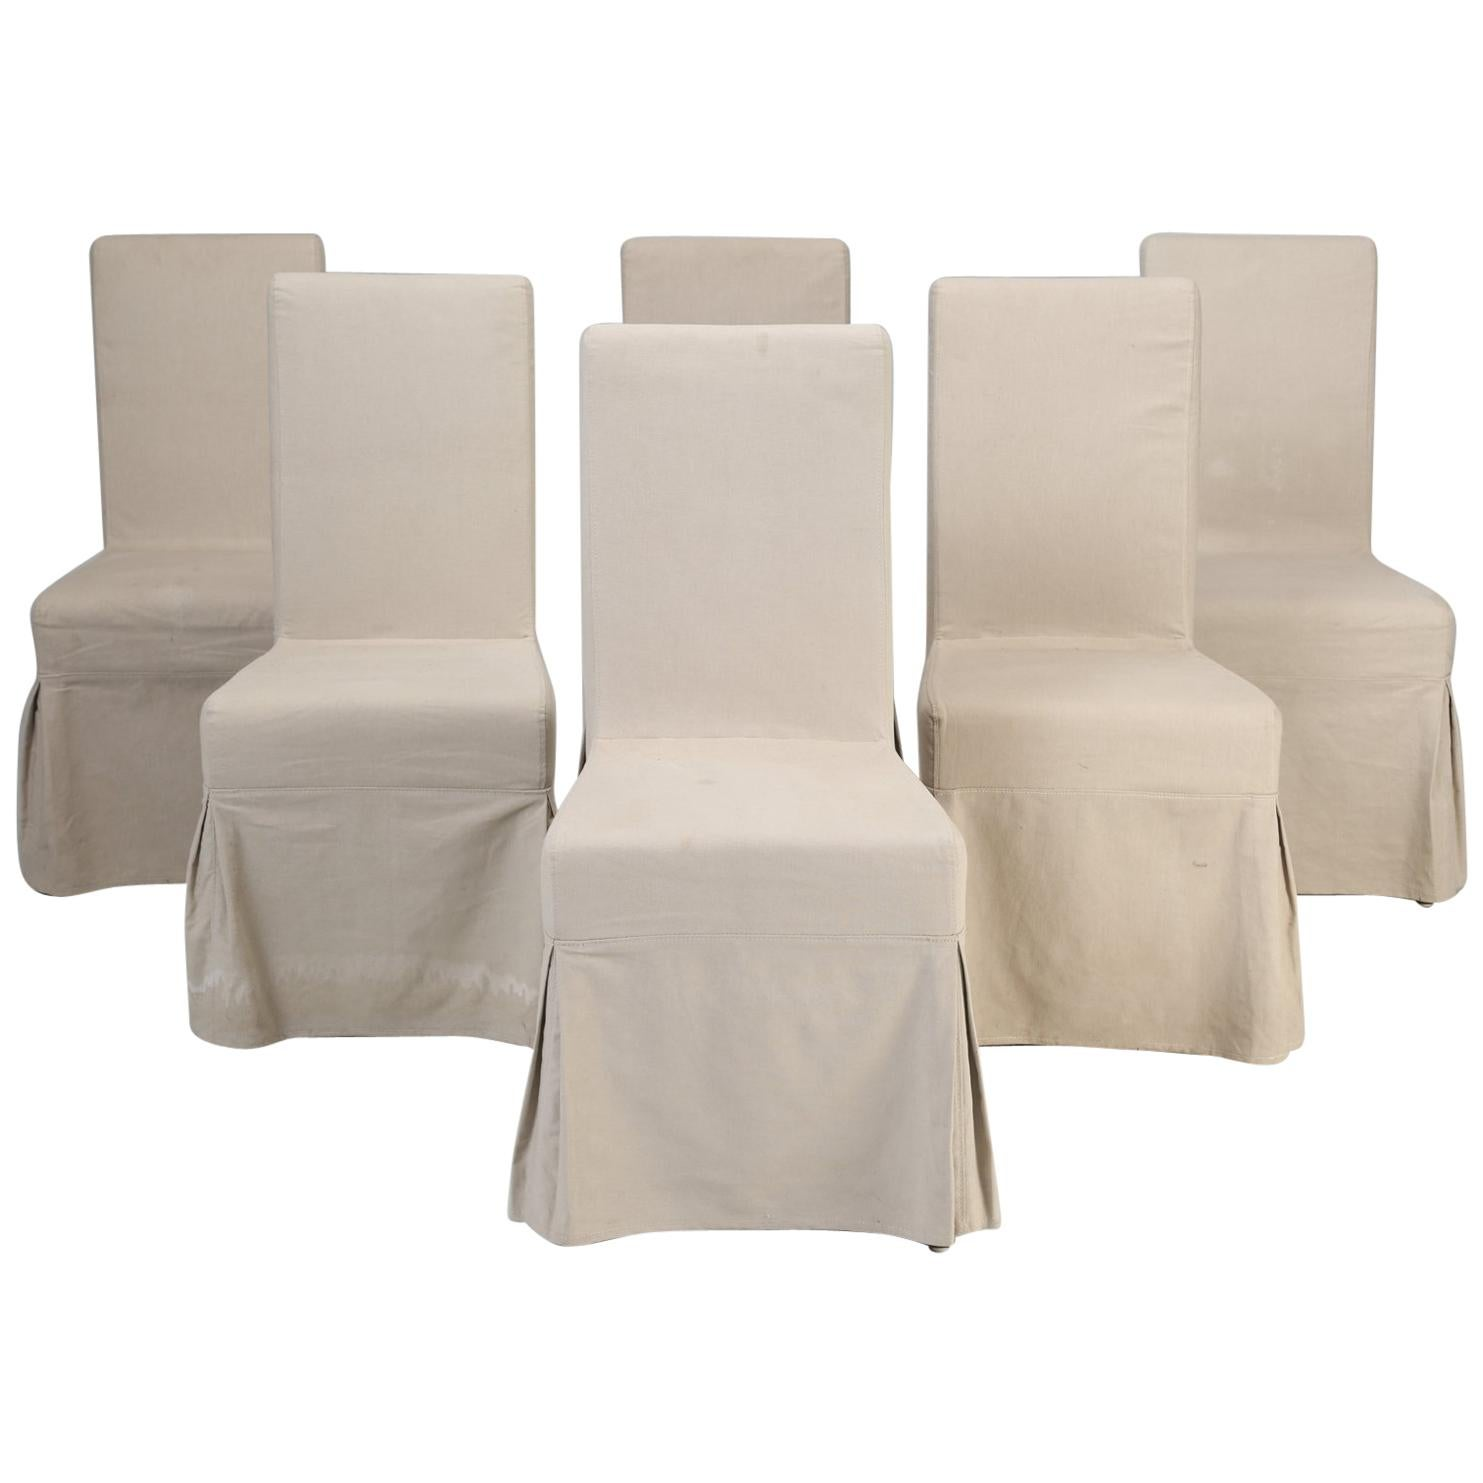 Slip Covers For Chairs Set Of 6 Slip Cover Chairs